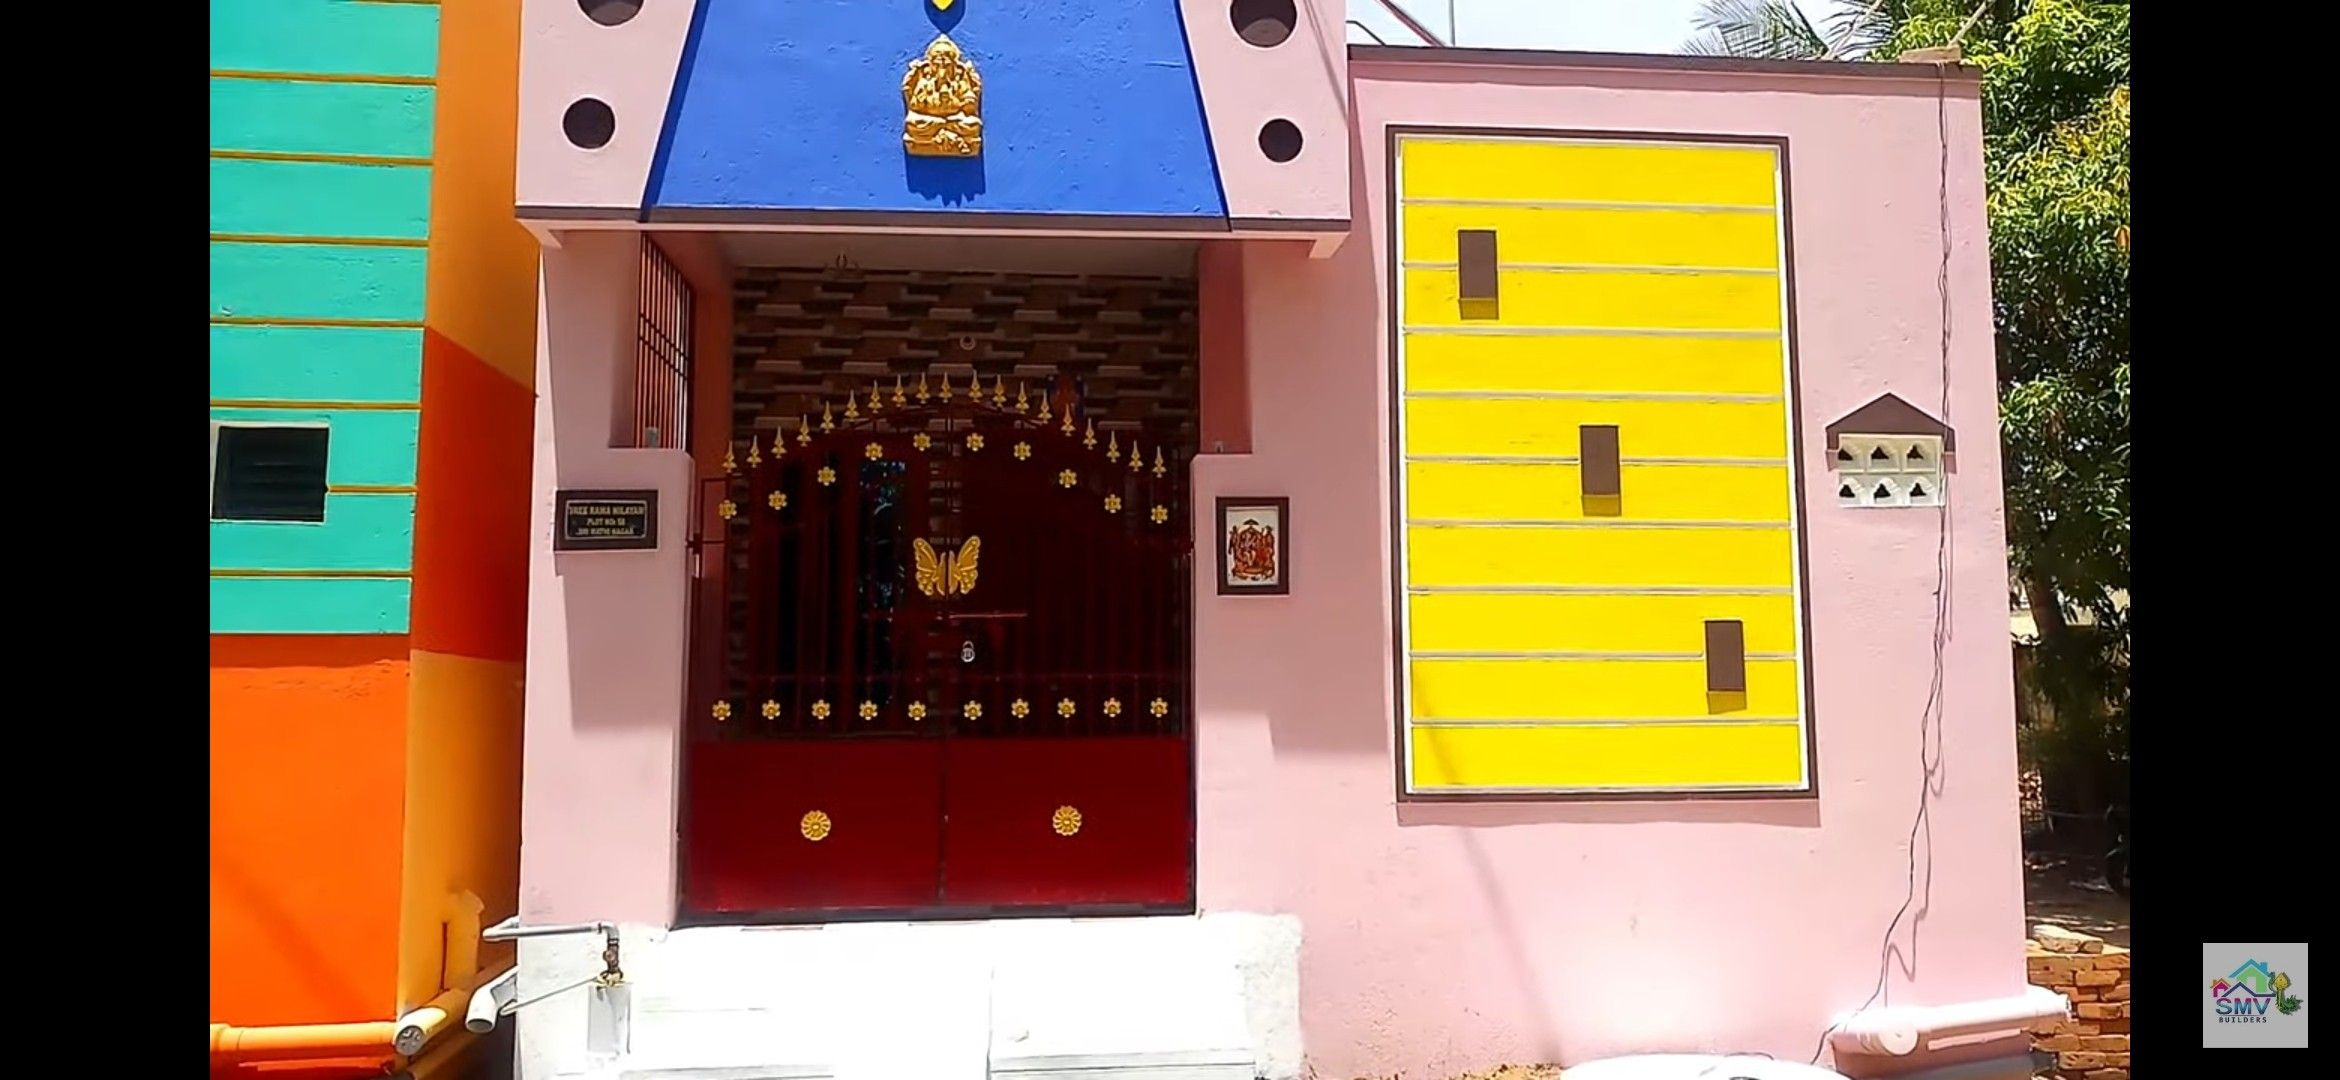 2 Bhk Individual House For Sale In Veppampattu Smv Builders In 2020 House Sale Walkability